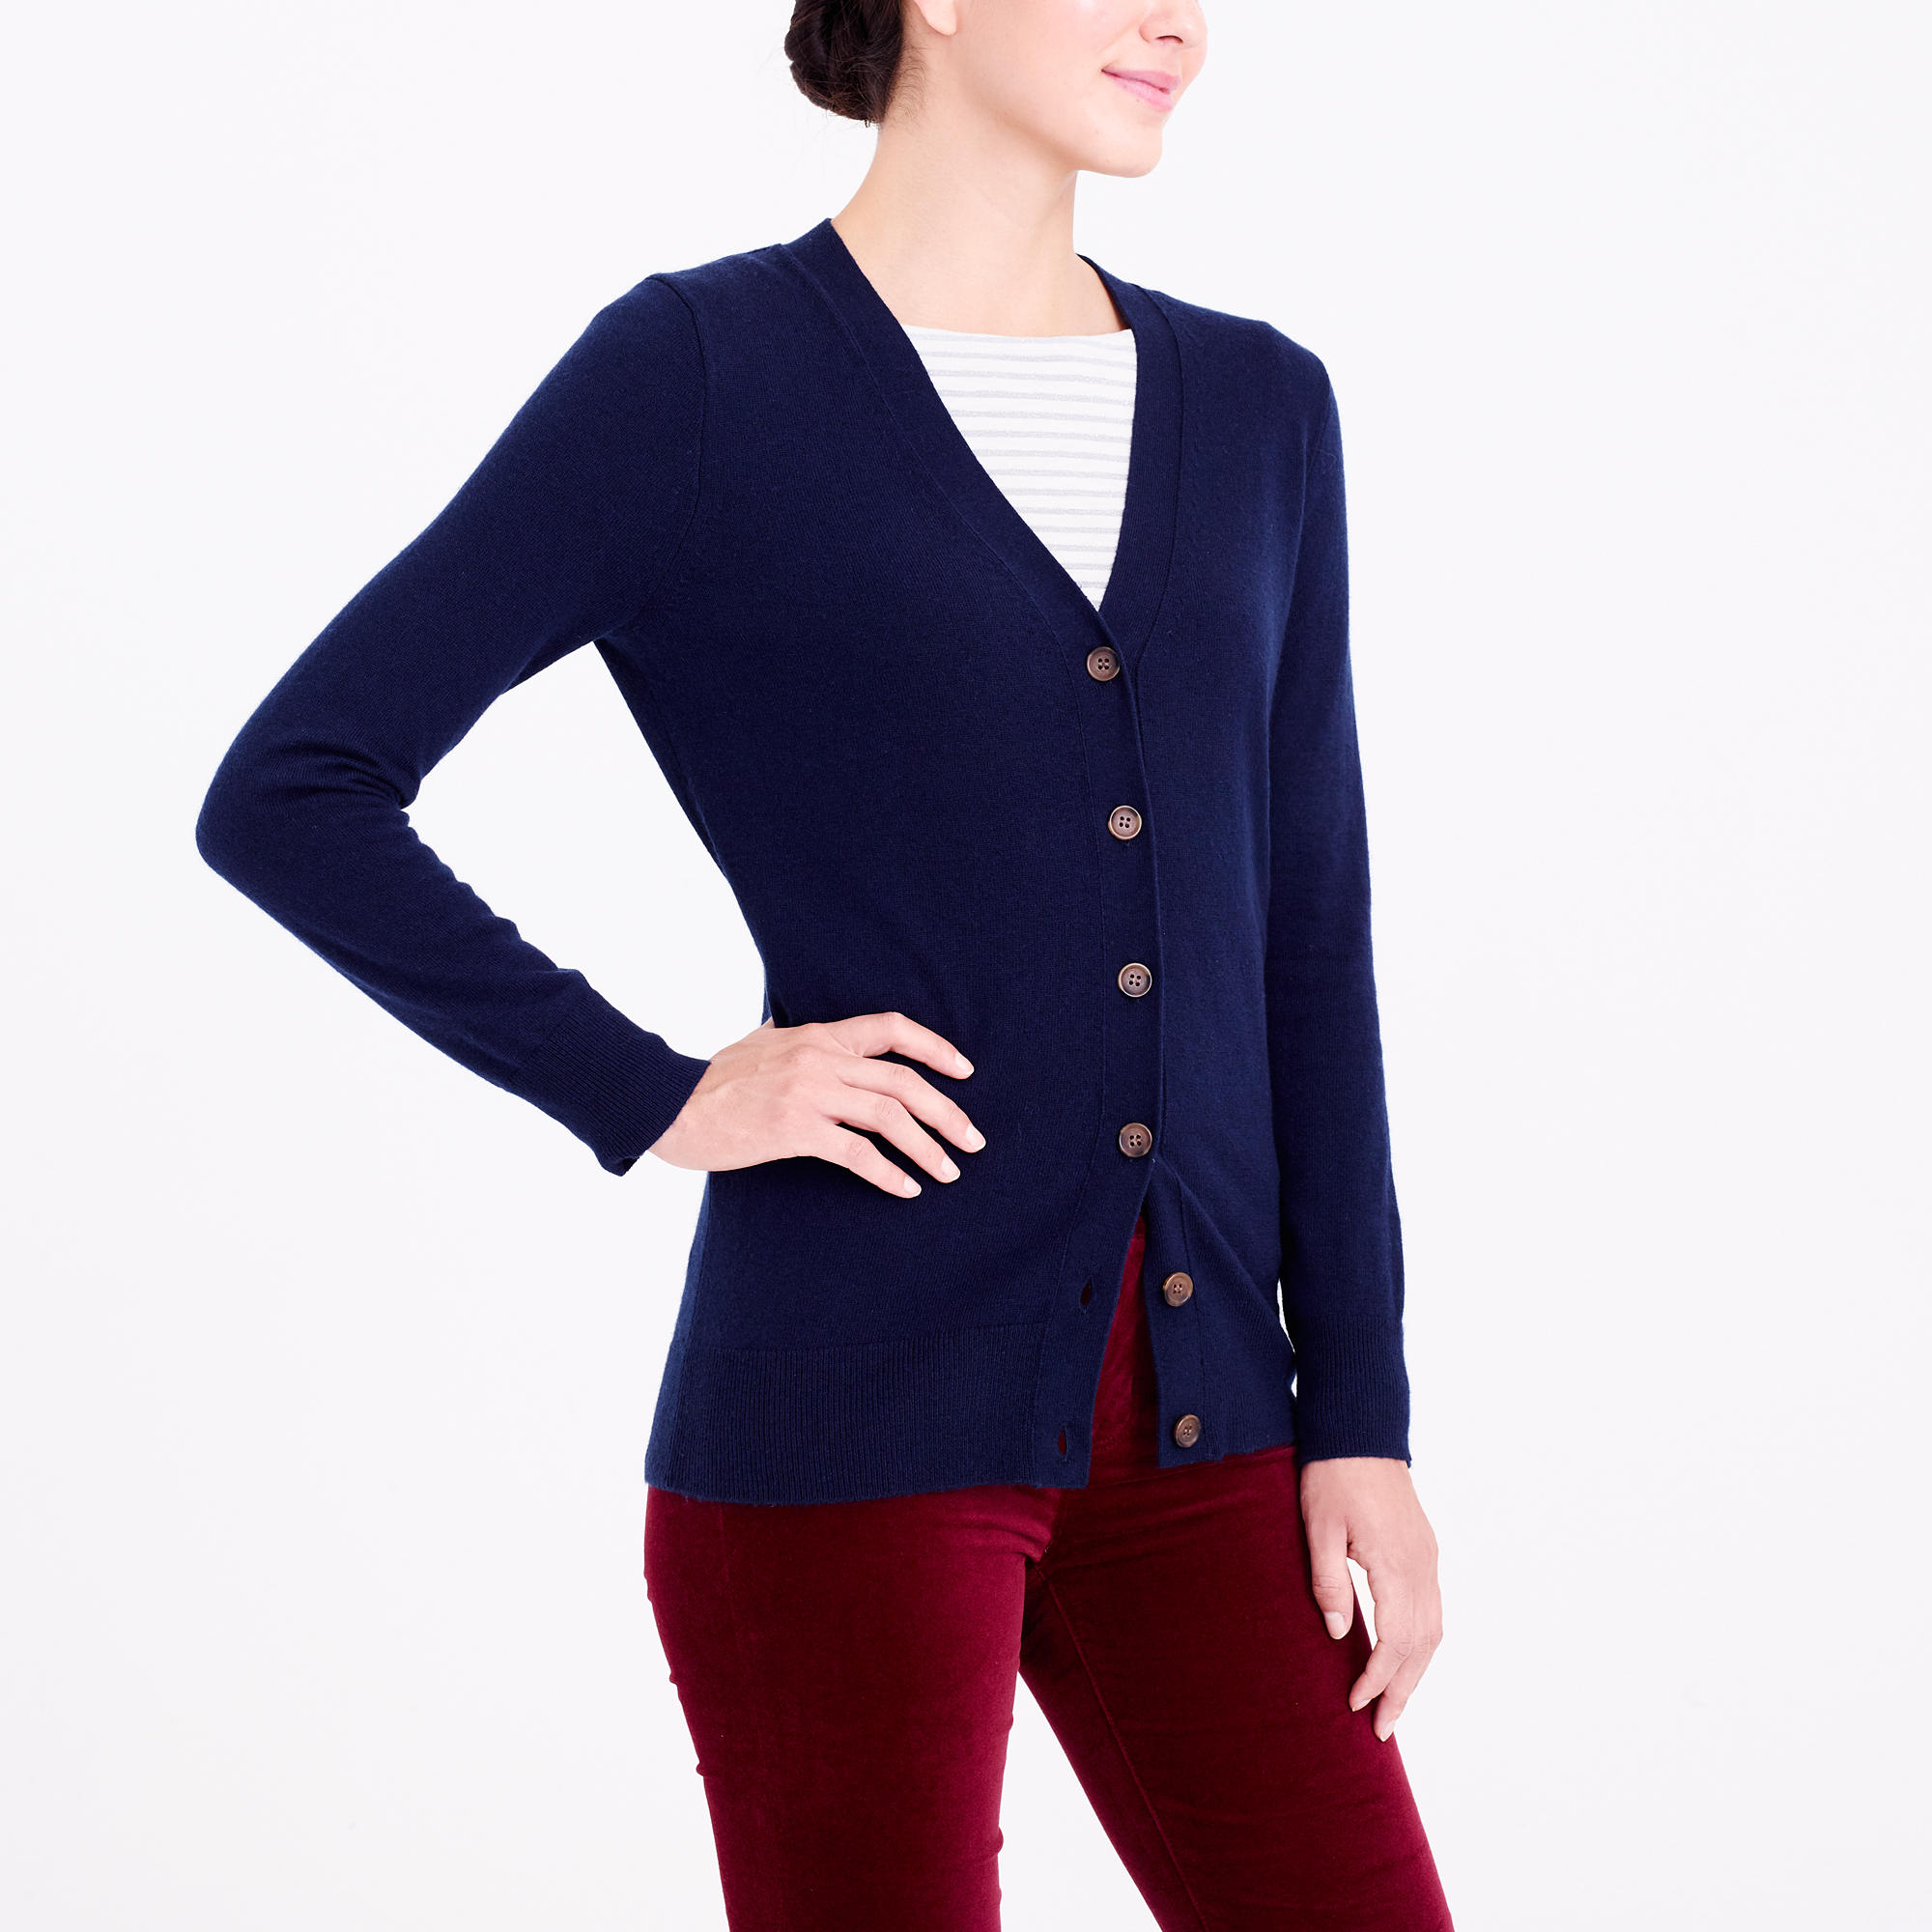 V-neck cardigan sweater : FactoryWomen cardigans & shells | Factory